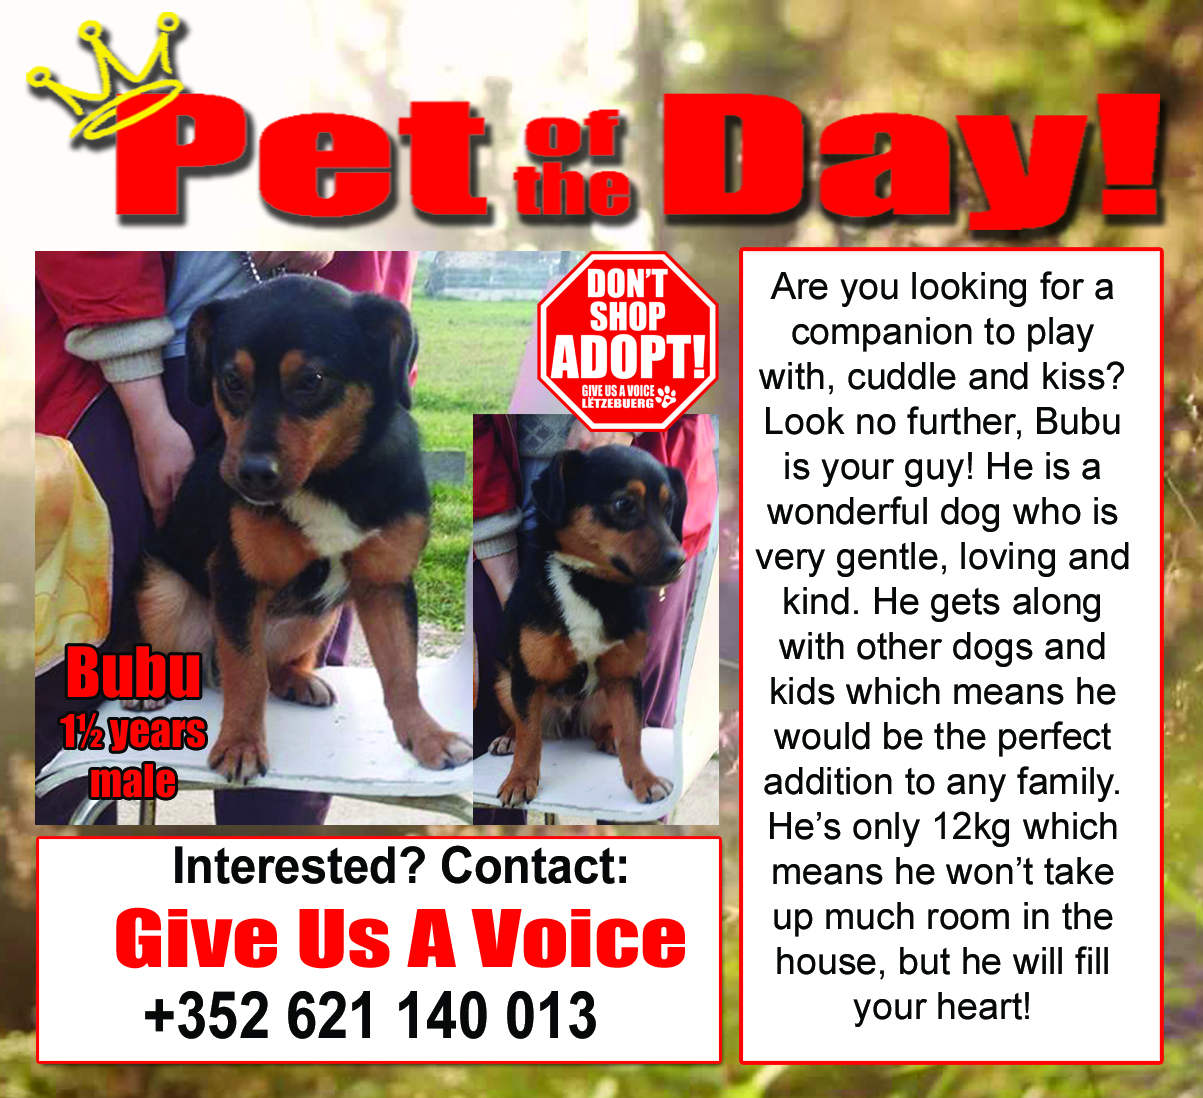 06-25-16 Pet of the Day